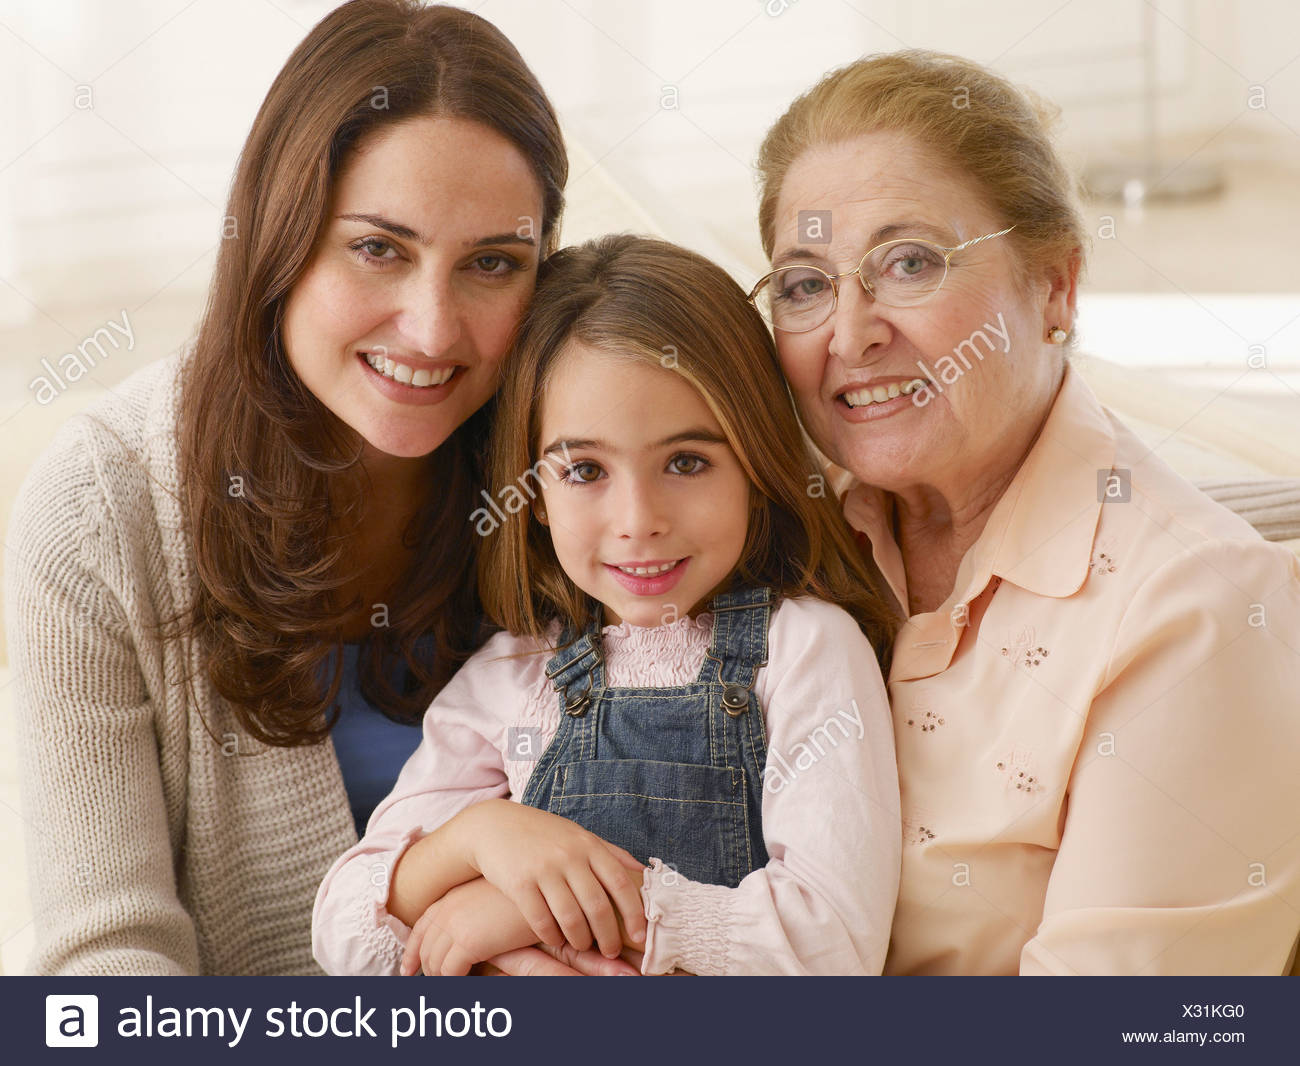 Girl posing with mother and grandmother - Stock Image